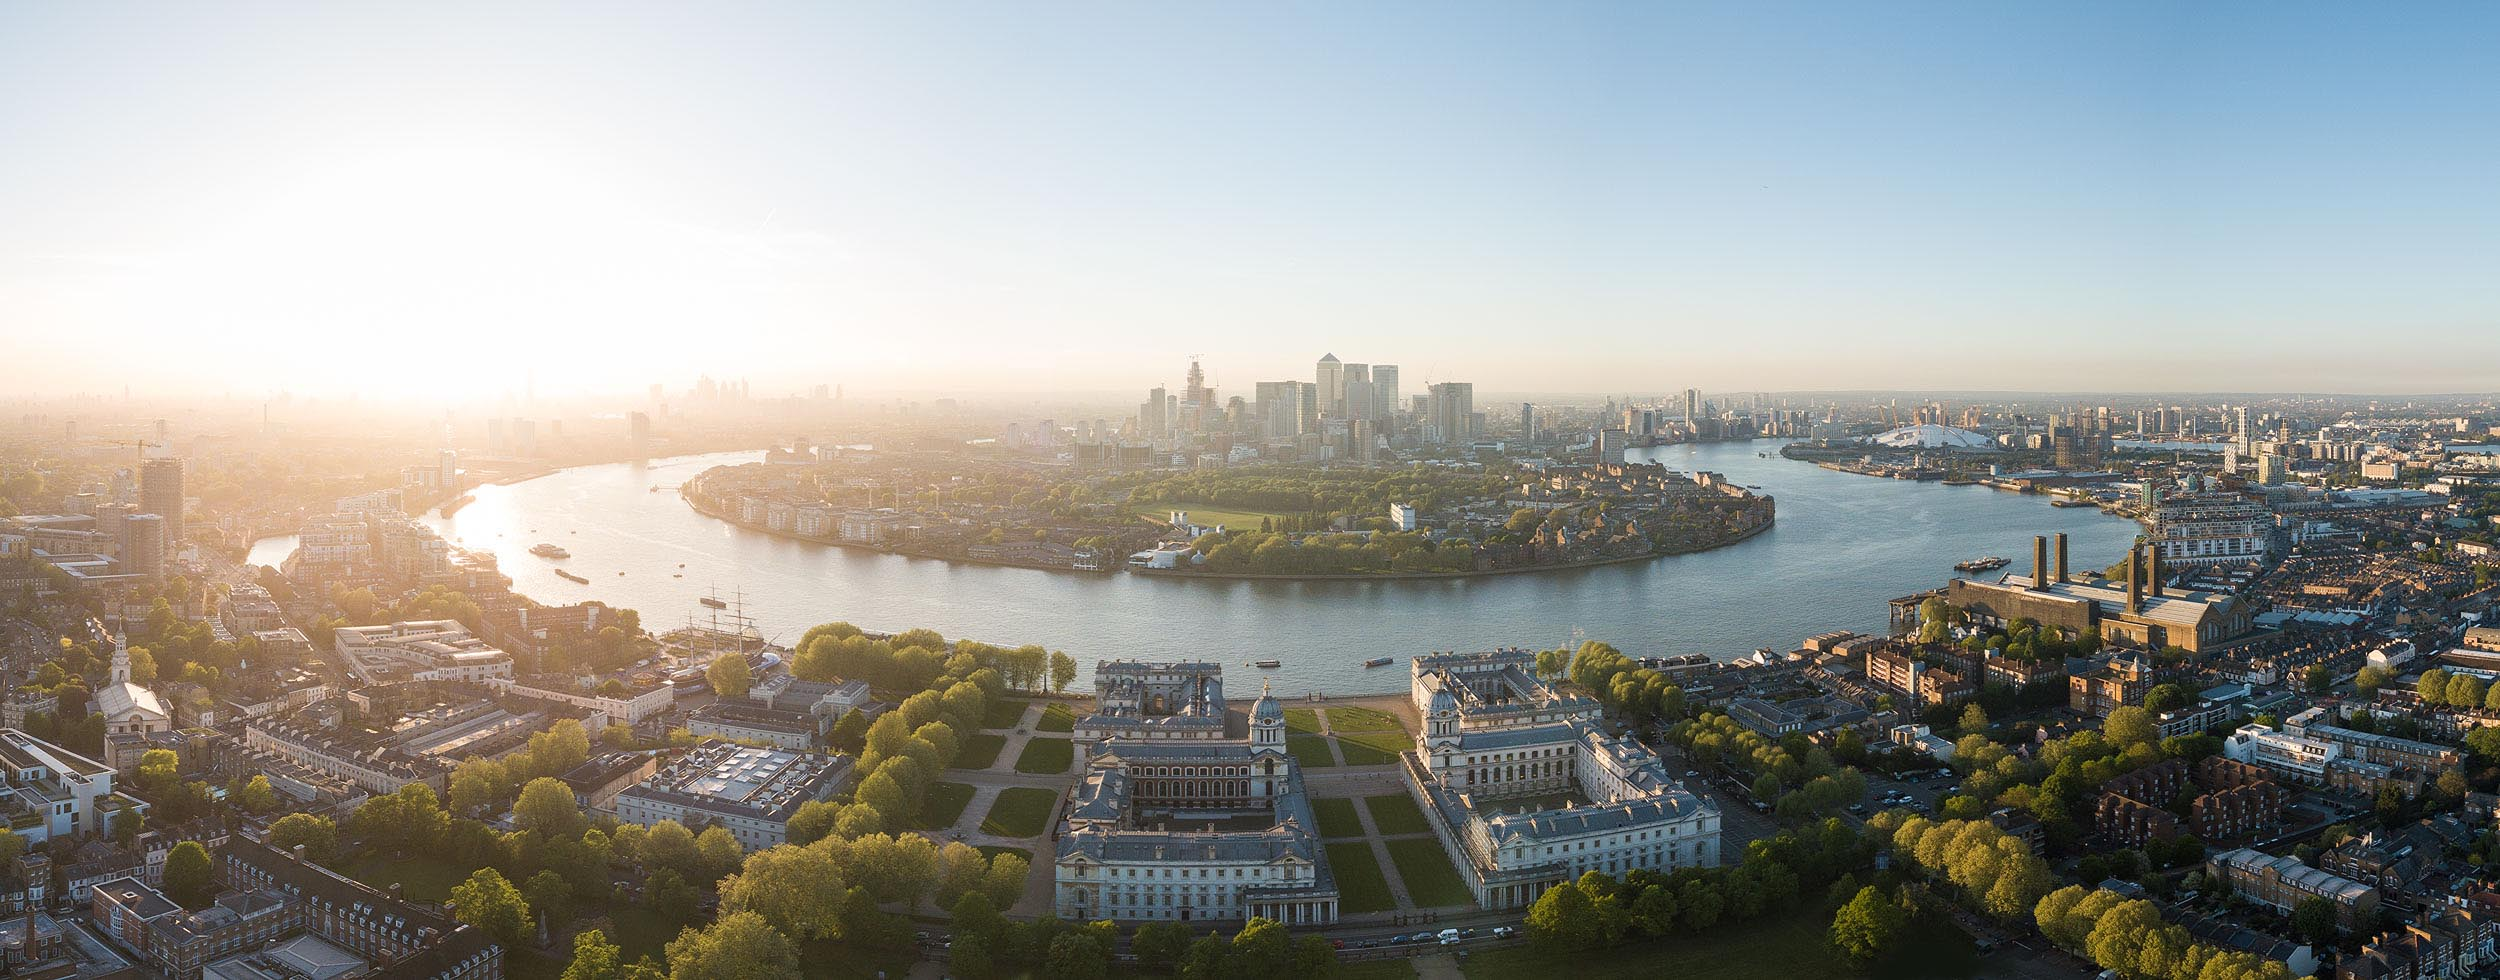 maritime-musuem-greenwich-park-london-uk-aerial-picture